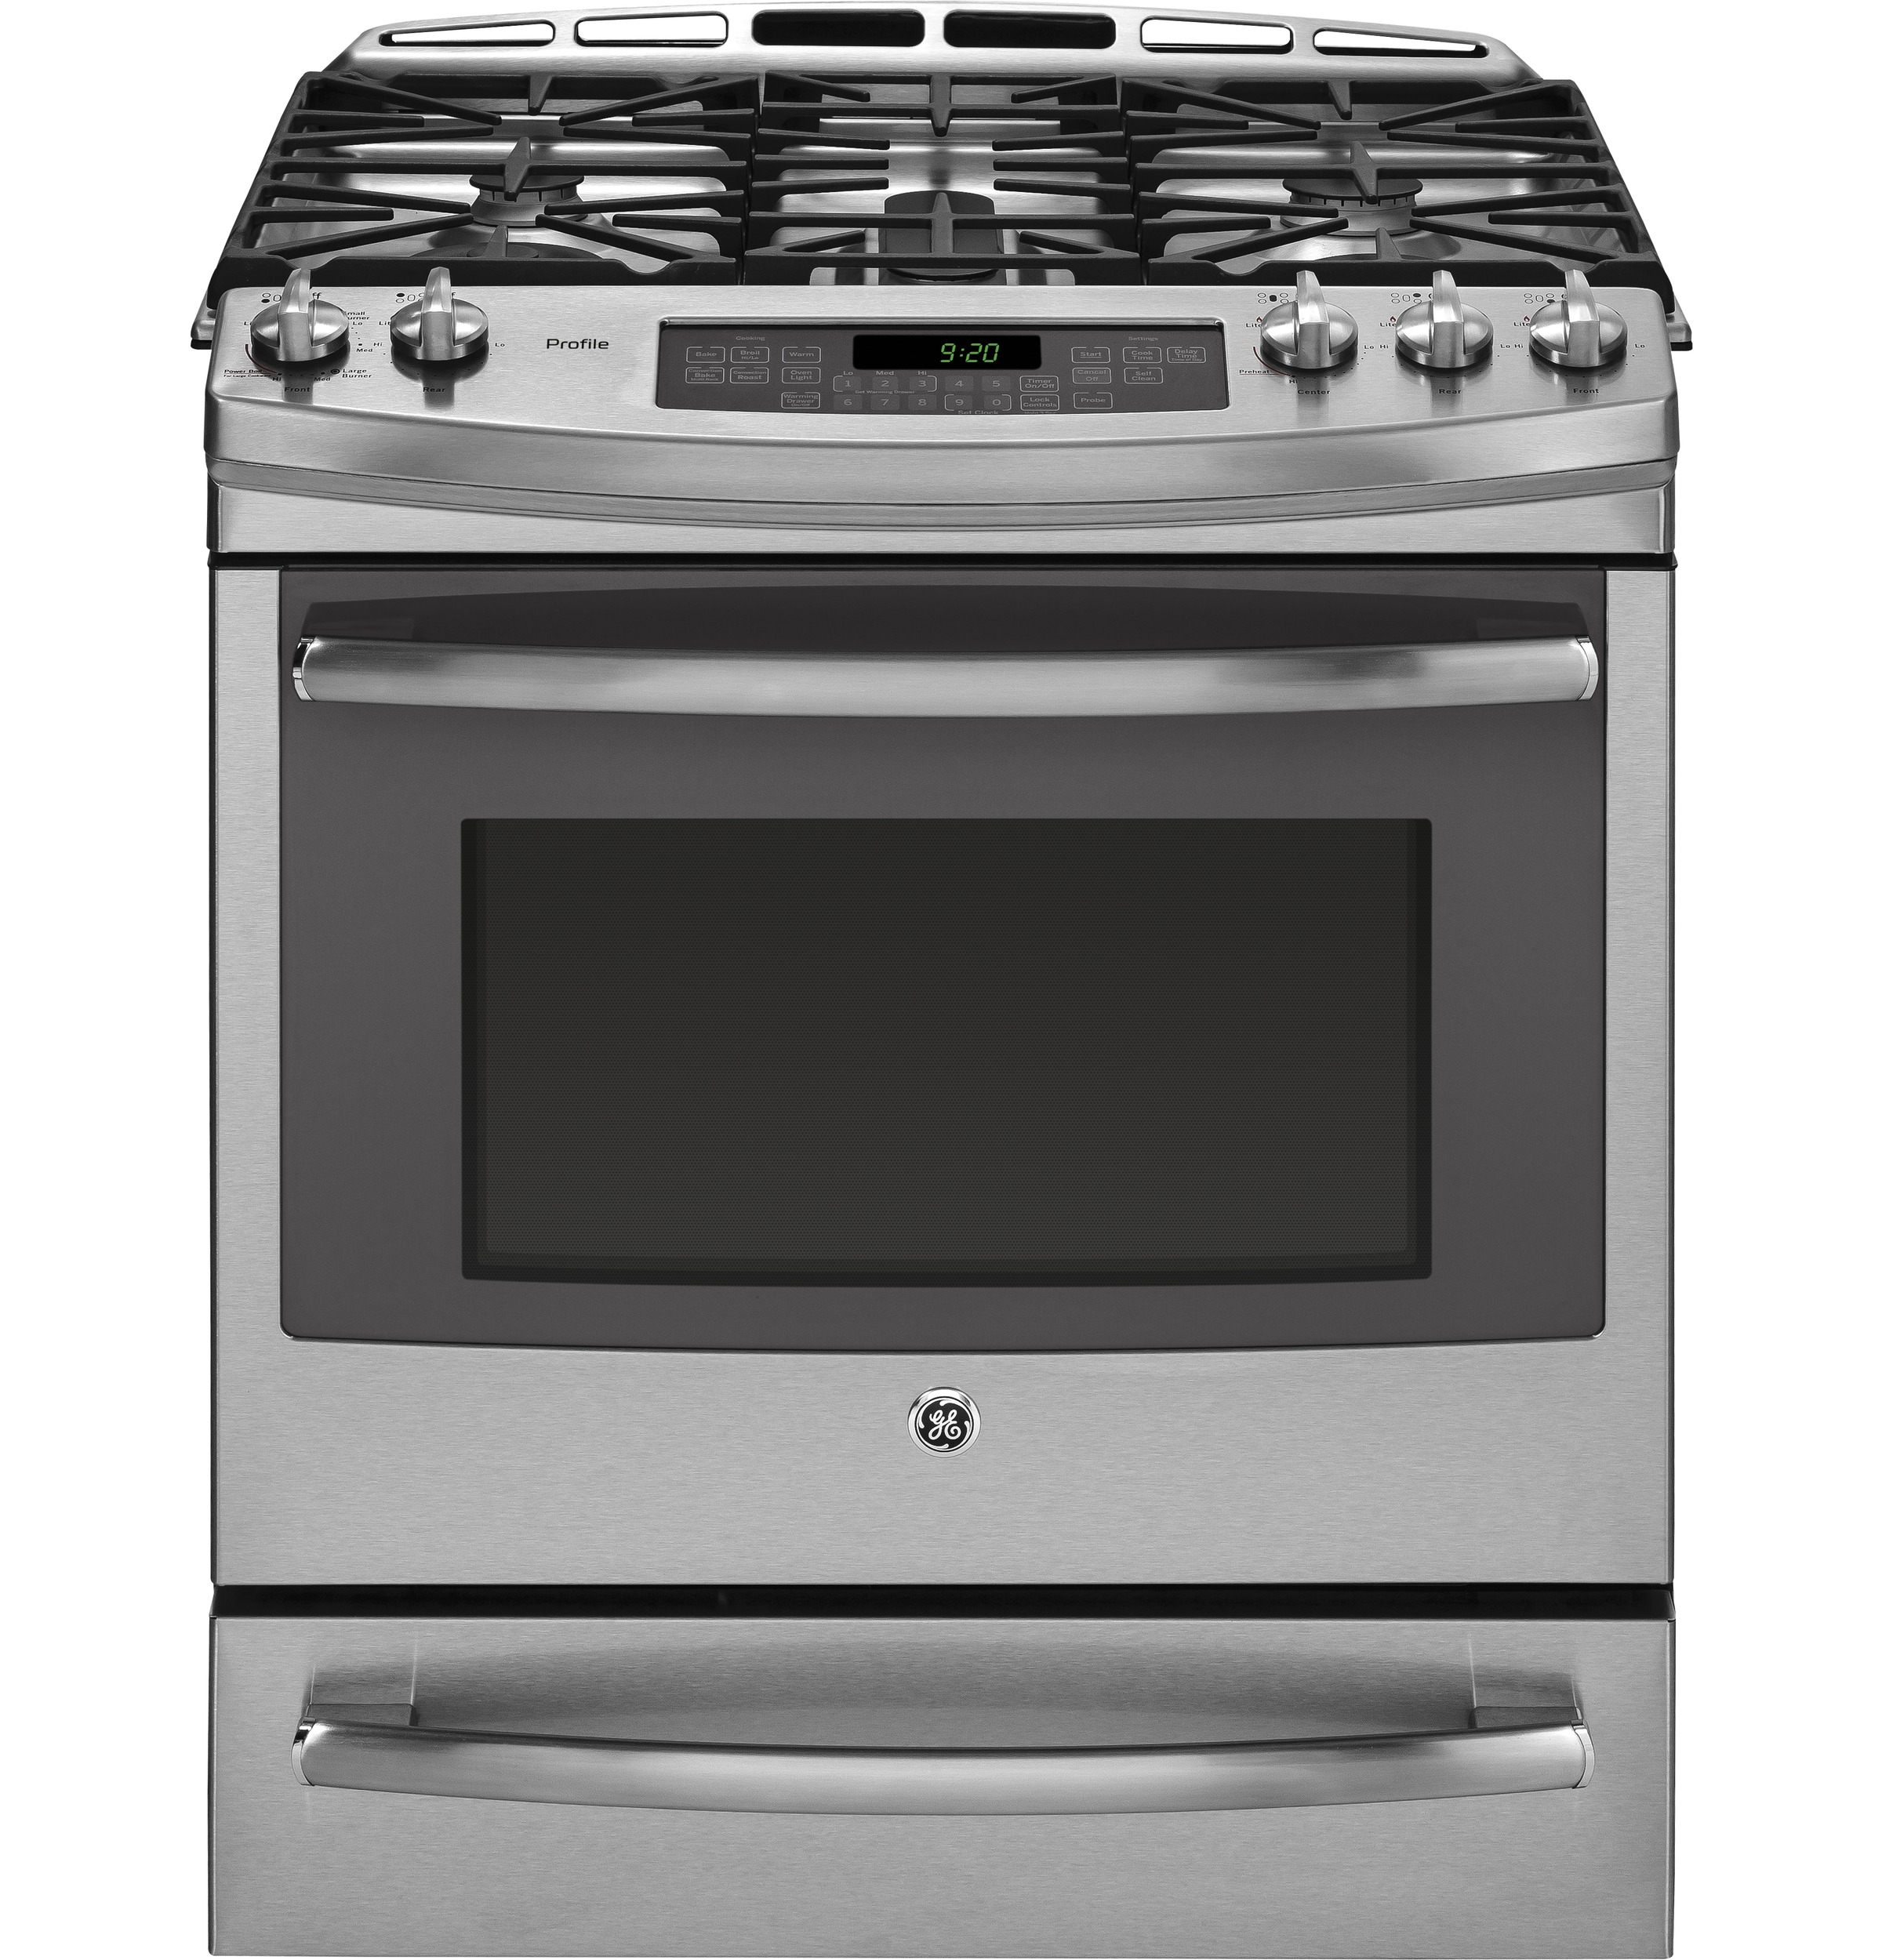 "GE Profile GE Profile™ Series 30"" Dual Fuel Slide-In Front Control Range with Warming Drawer"